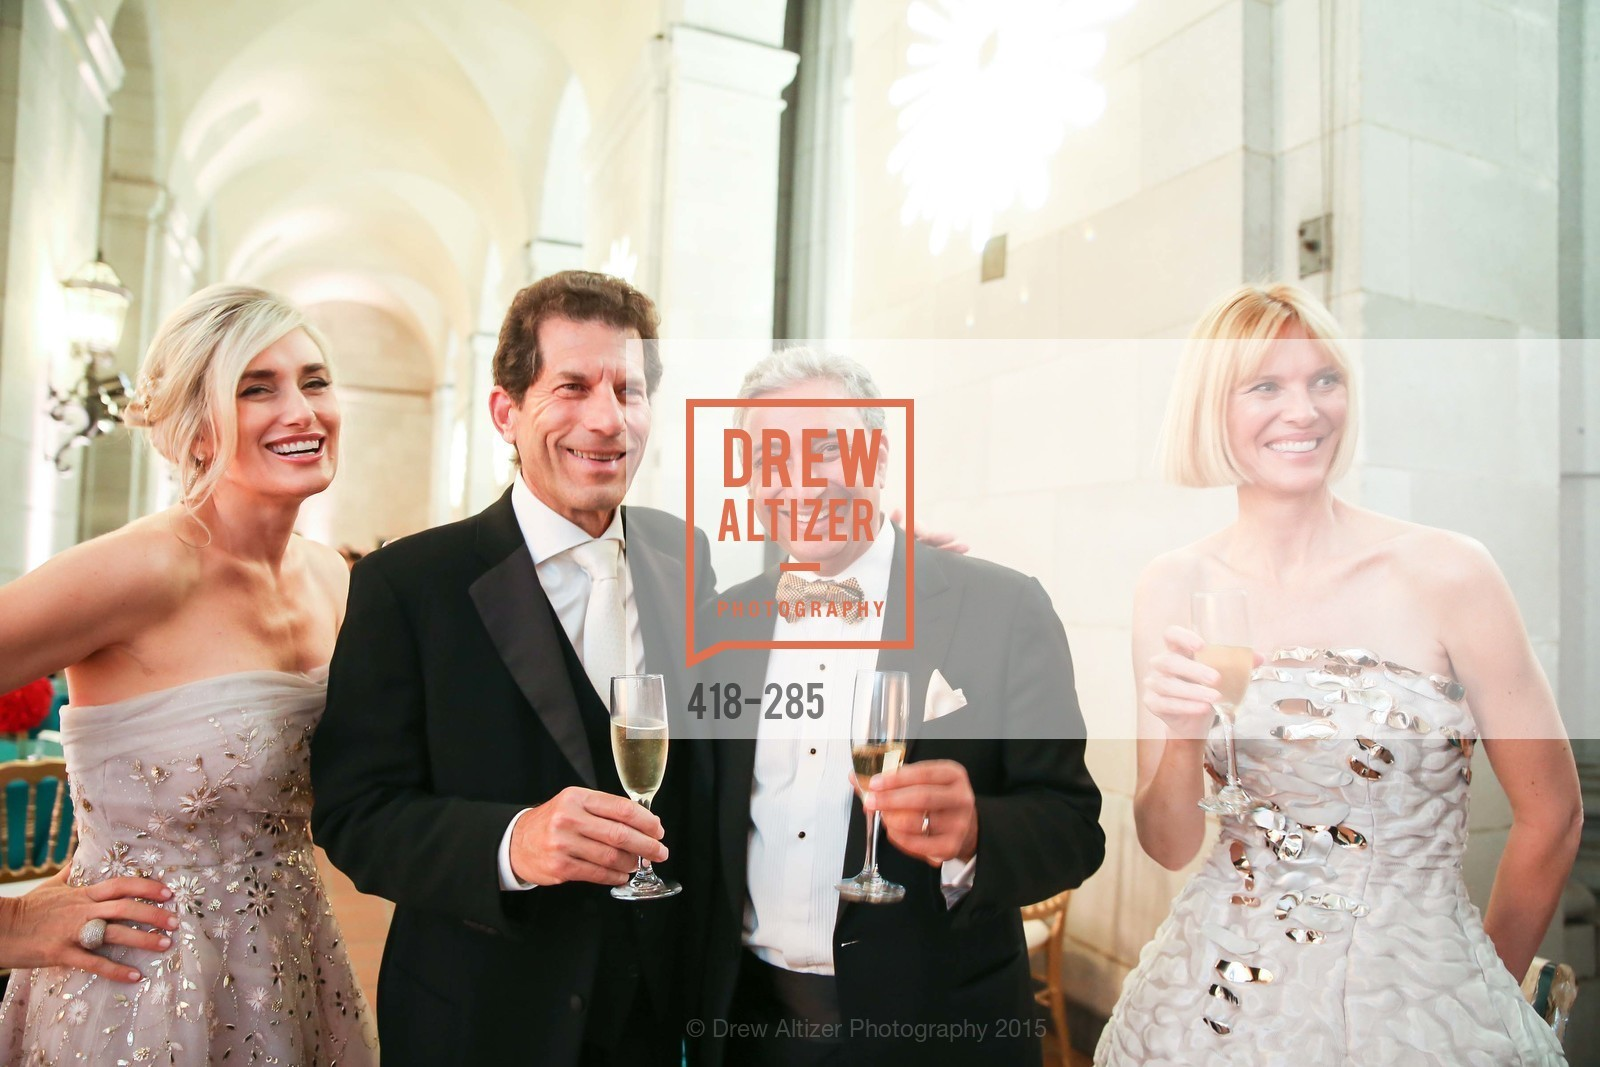 Top Picks, San Francisco Opera's BRAVO! CLUB Opening Night Gala, September 11th, 2015, Photo,Drew Altizer, Drew Altizer Photography, full-service agency, private events, San Francisco photographer, photographer california